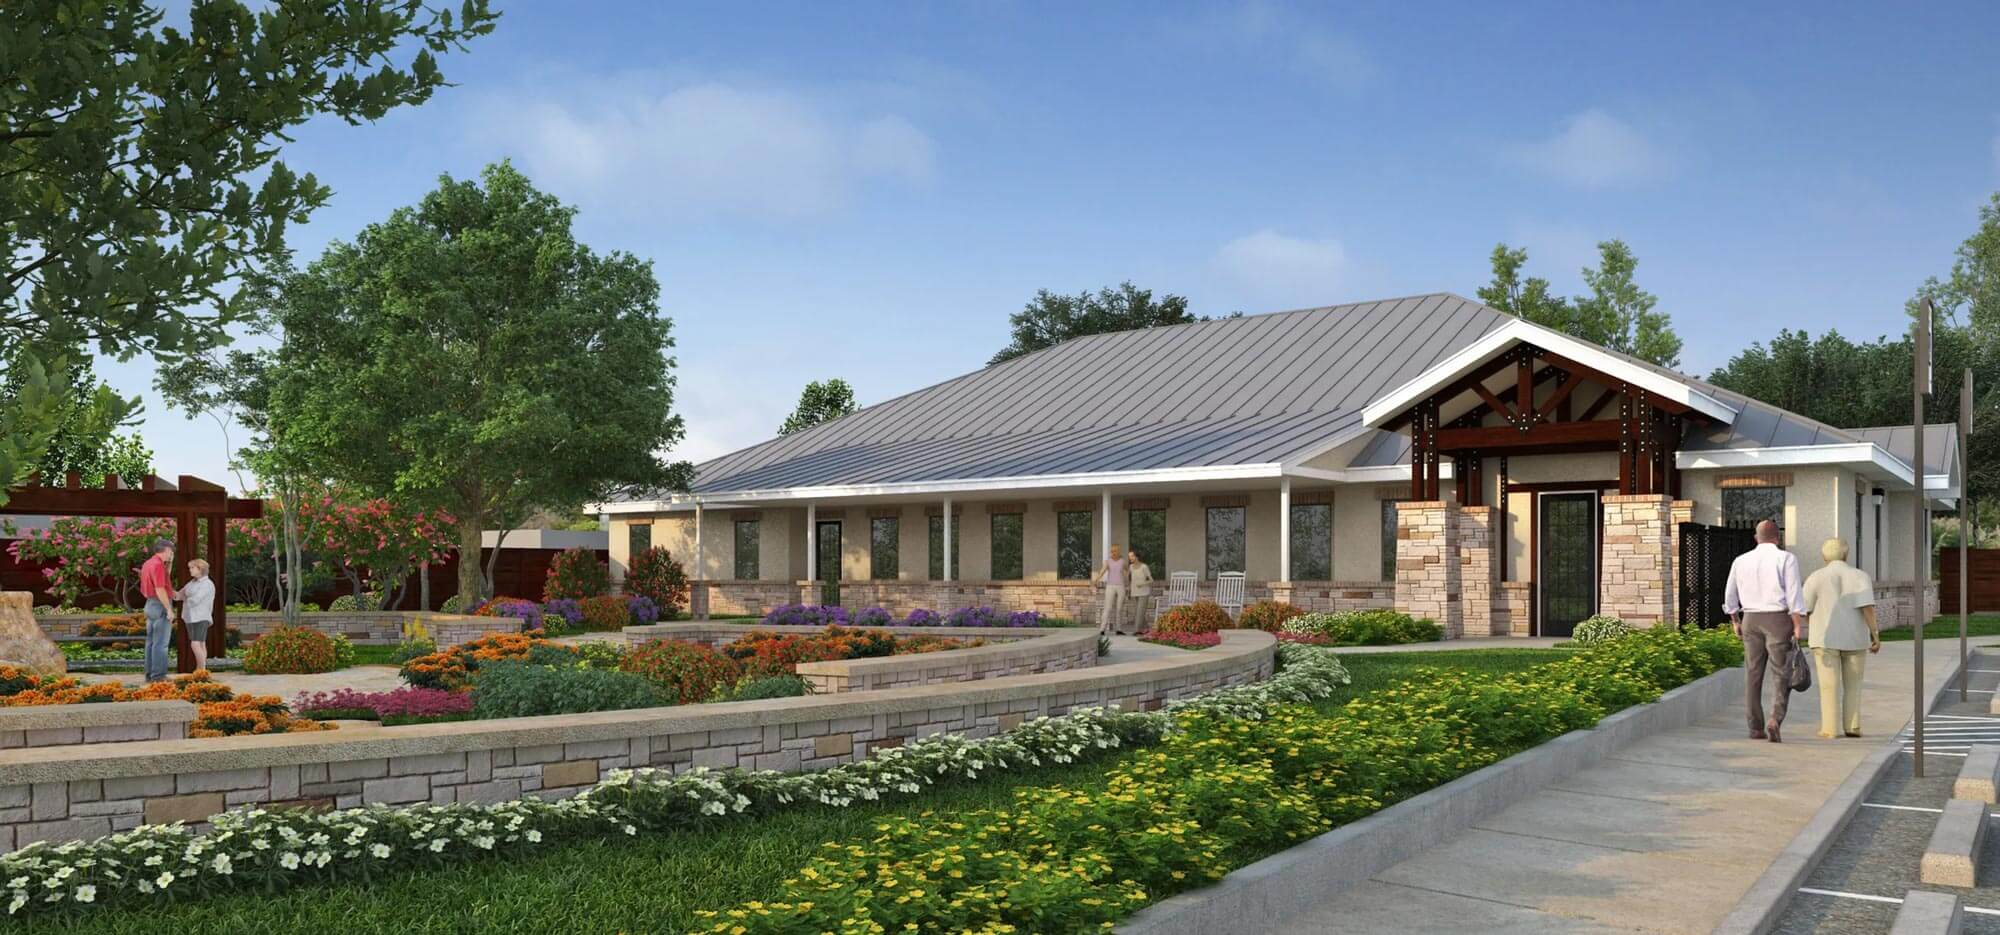 Serenity Oaks Rendering | Serenity Oaks Assisted Living & Memory Care, Respite Care in Live Oaks, San Antonio, Texas